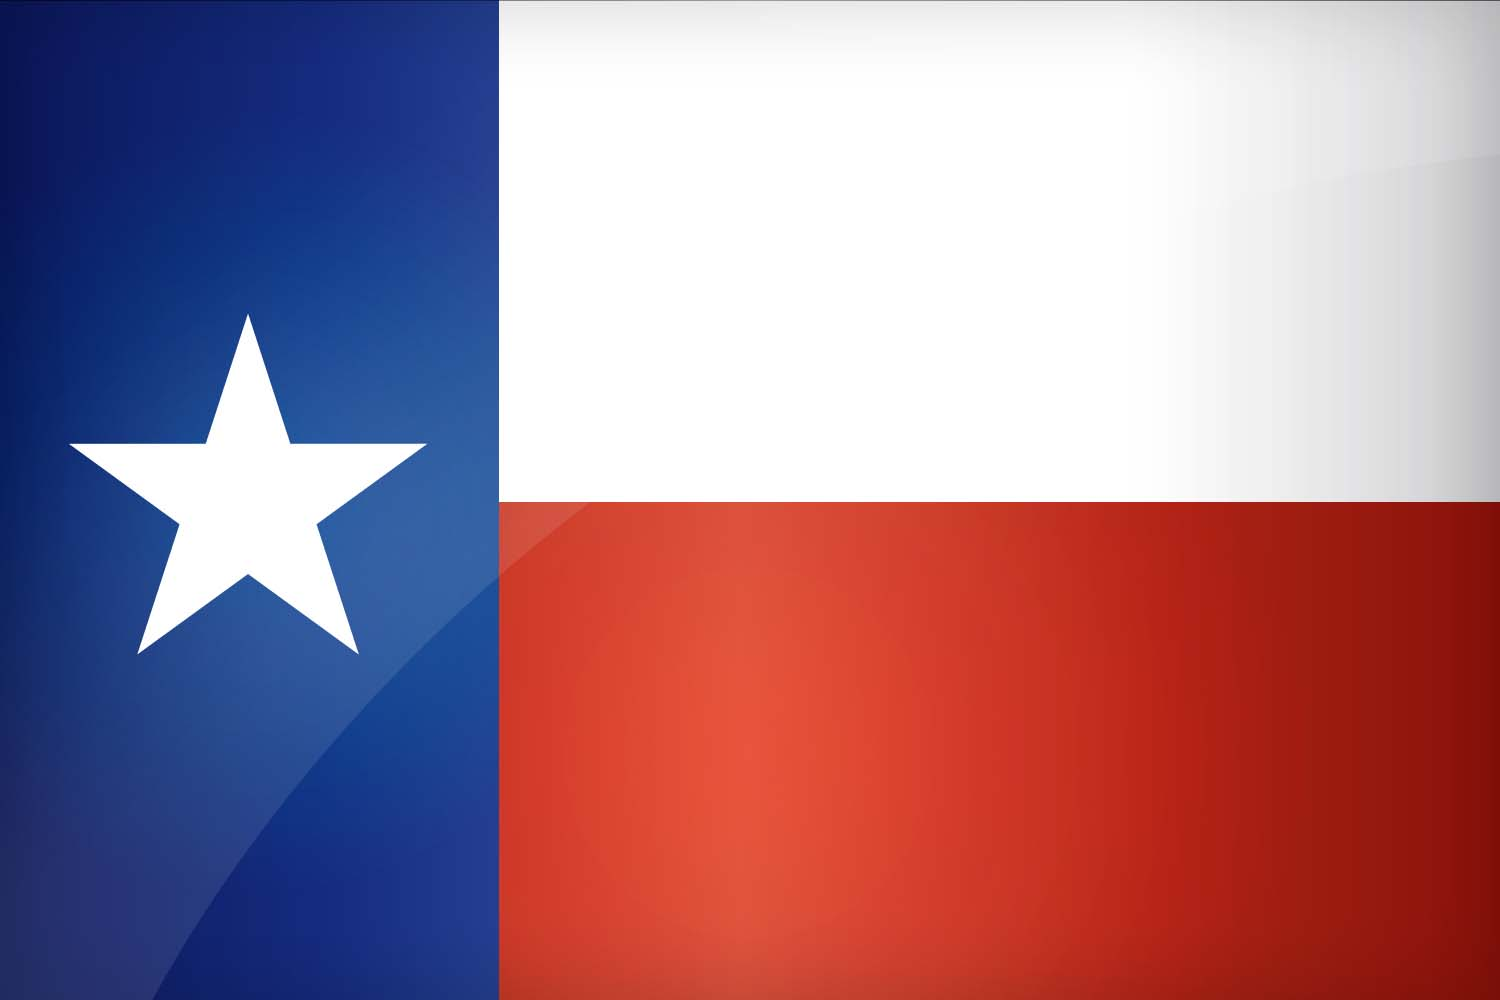 The flag of texas